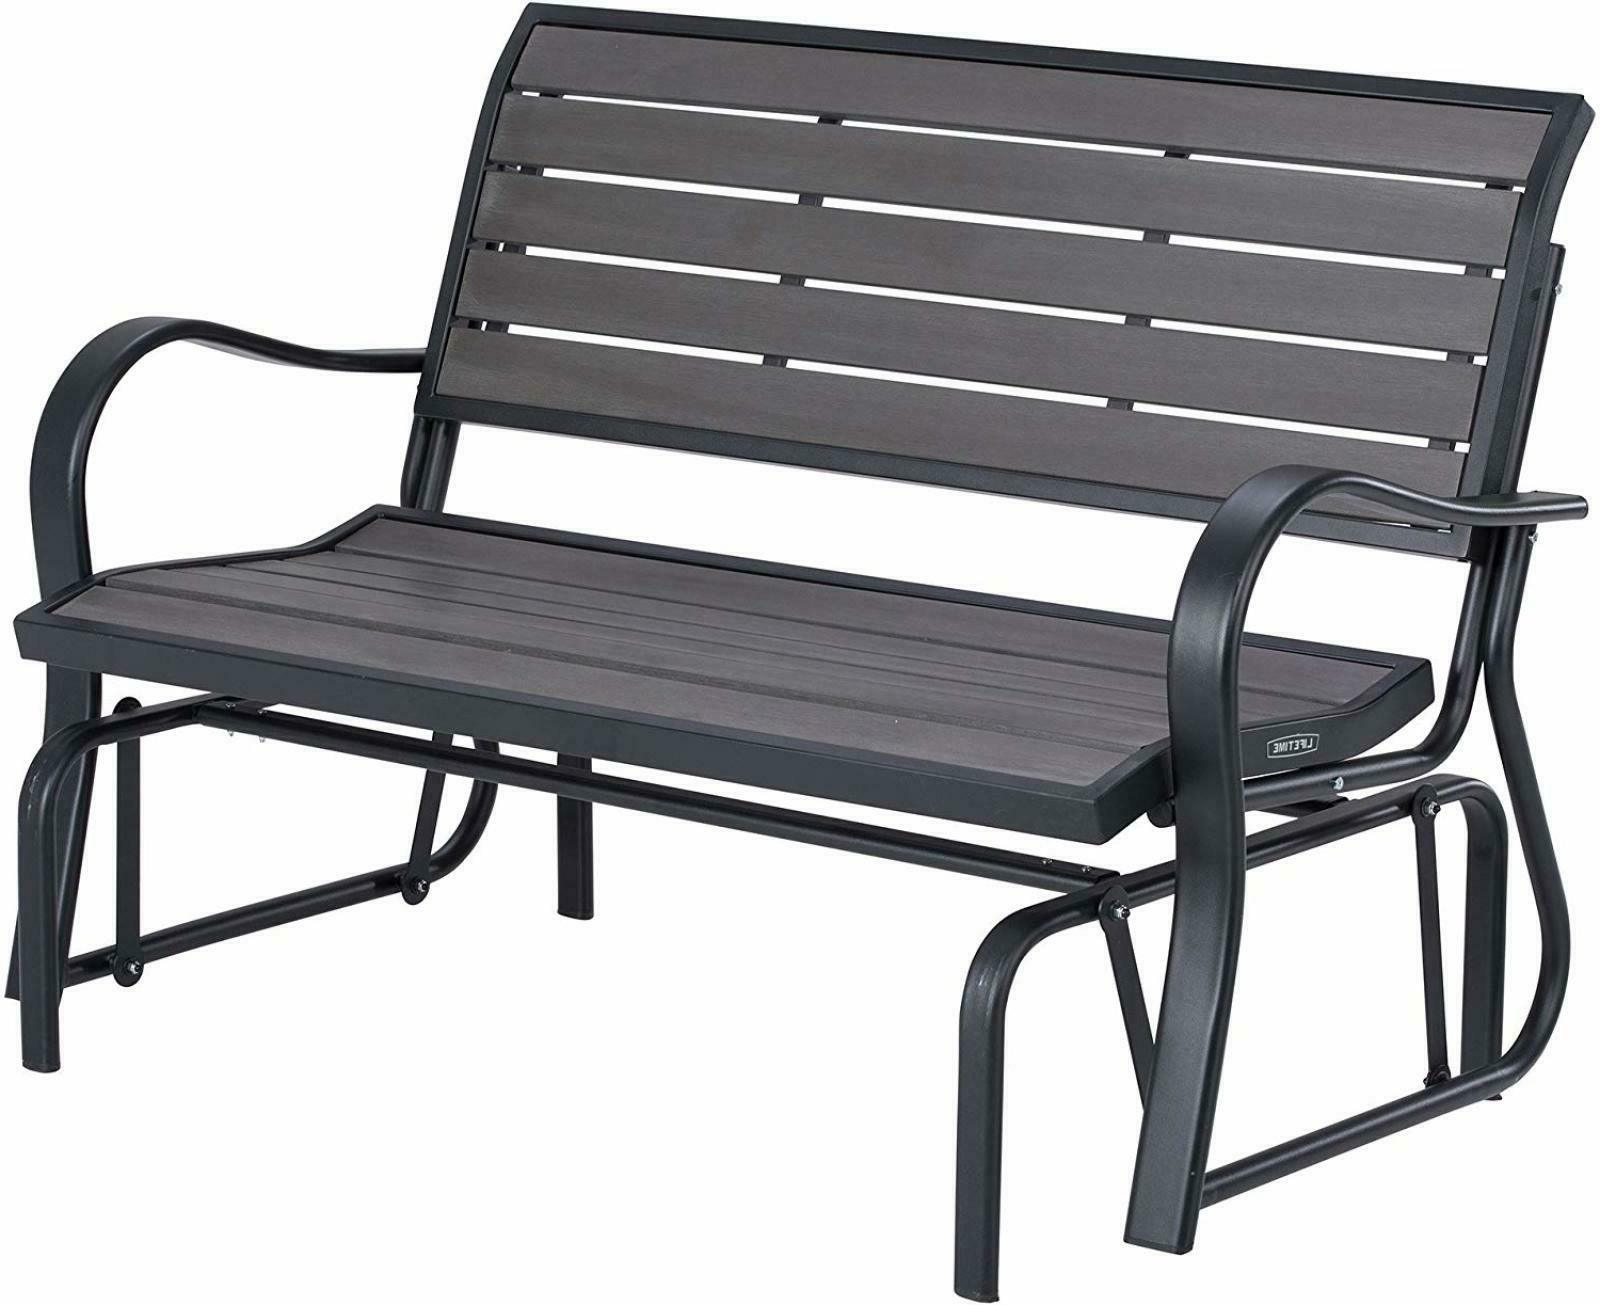 2 Person Black Wood Outdoor Swings Pertaining To Widely Used Patio Swing Loveseat Chair 2 People Seats Outdoor Glider Steel Frame Grey Bench (View 18 of 25)